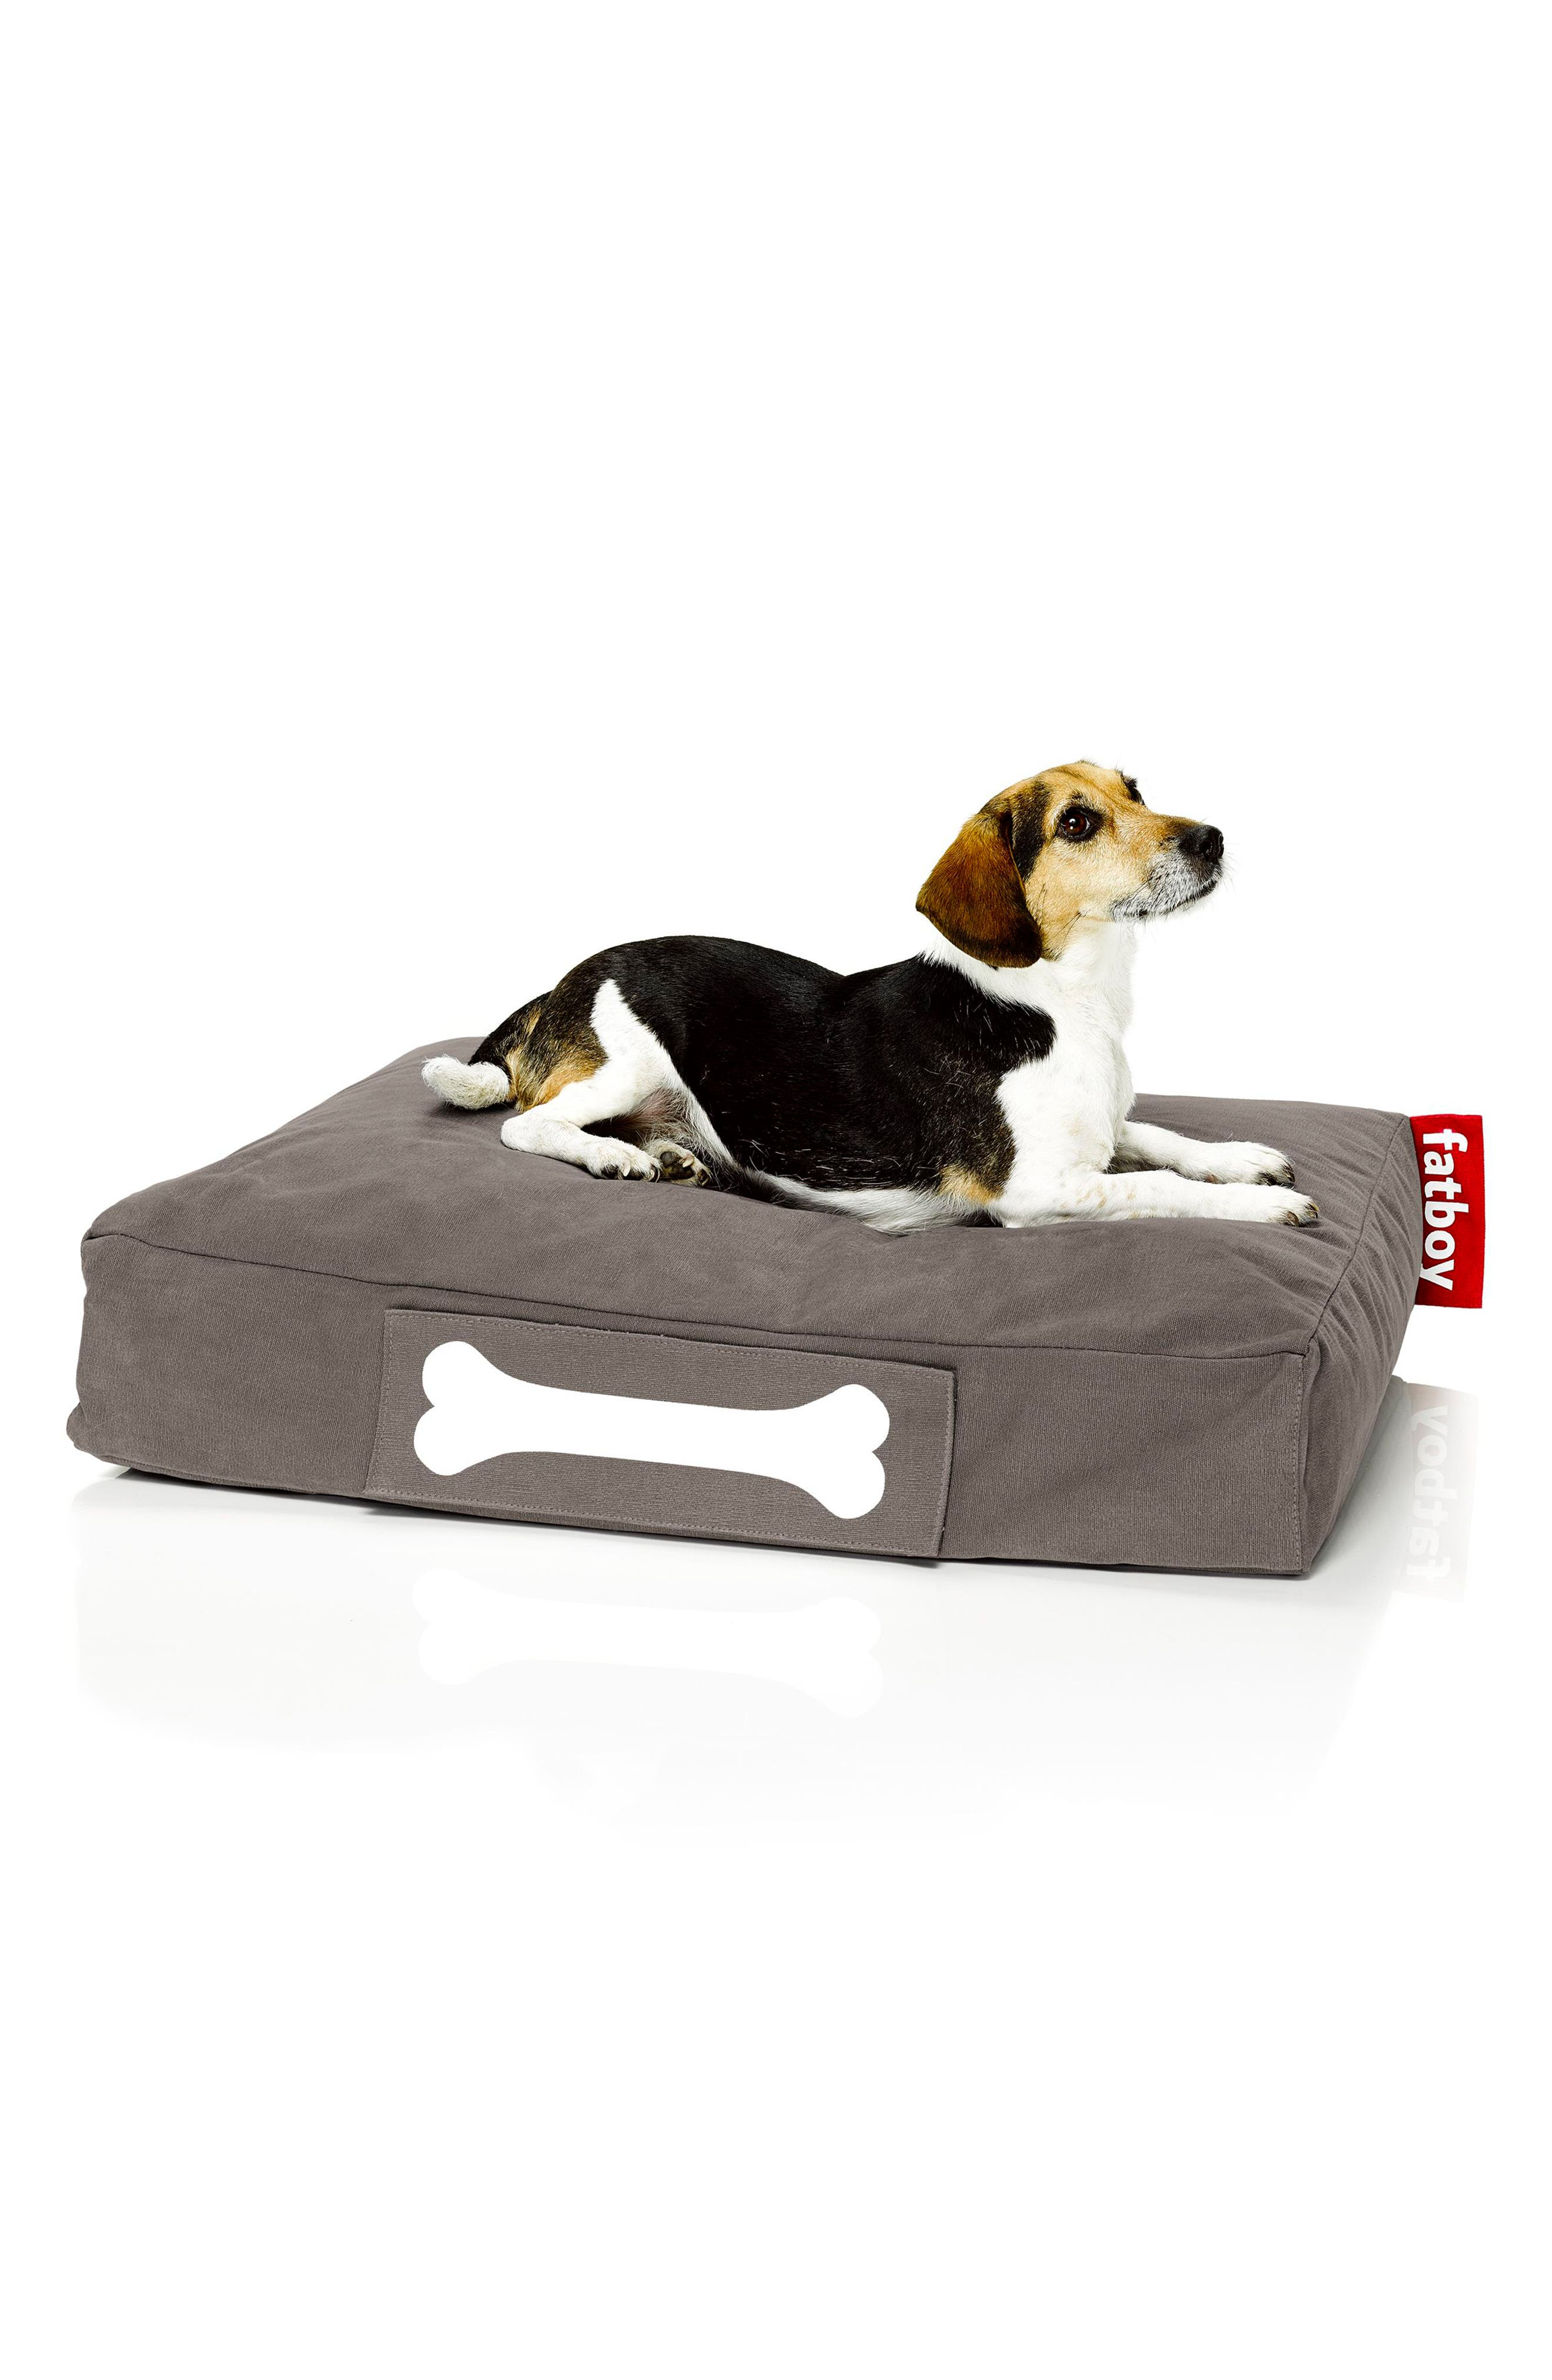 Doggielounge - Stonewashed Pet Bed,                             Alternate thumbnail 4, color,                             Taupe